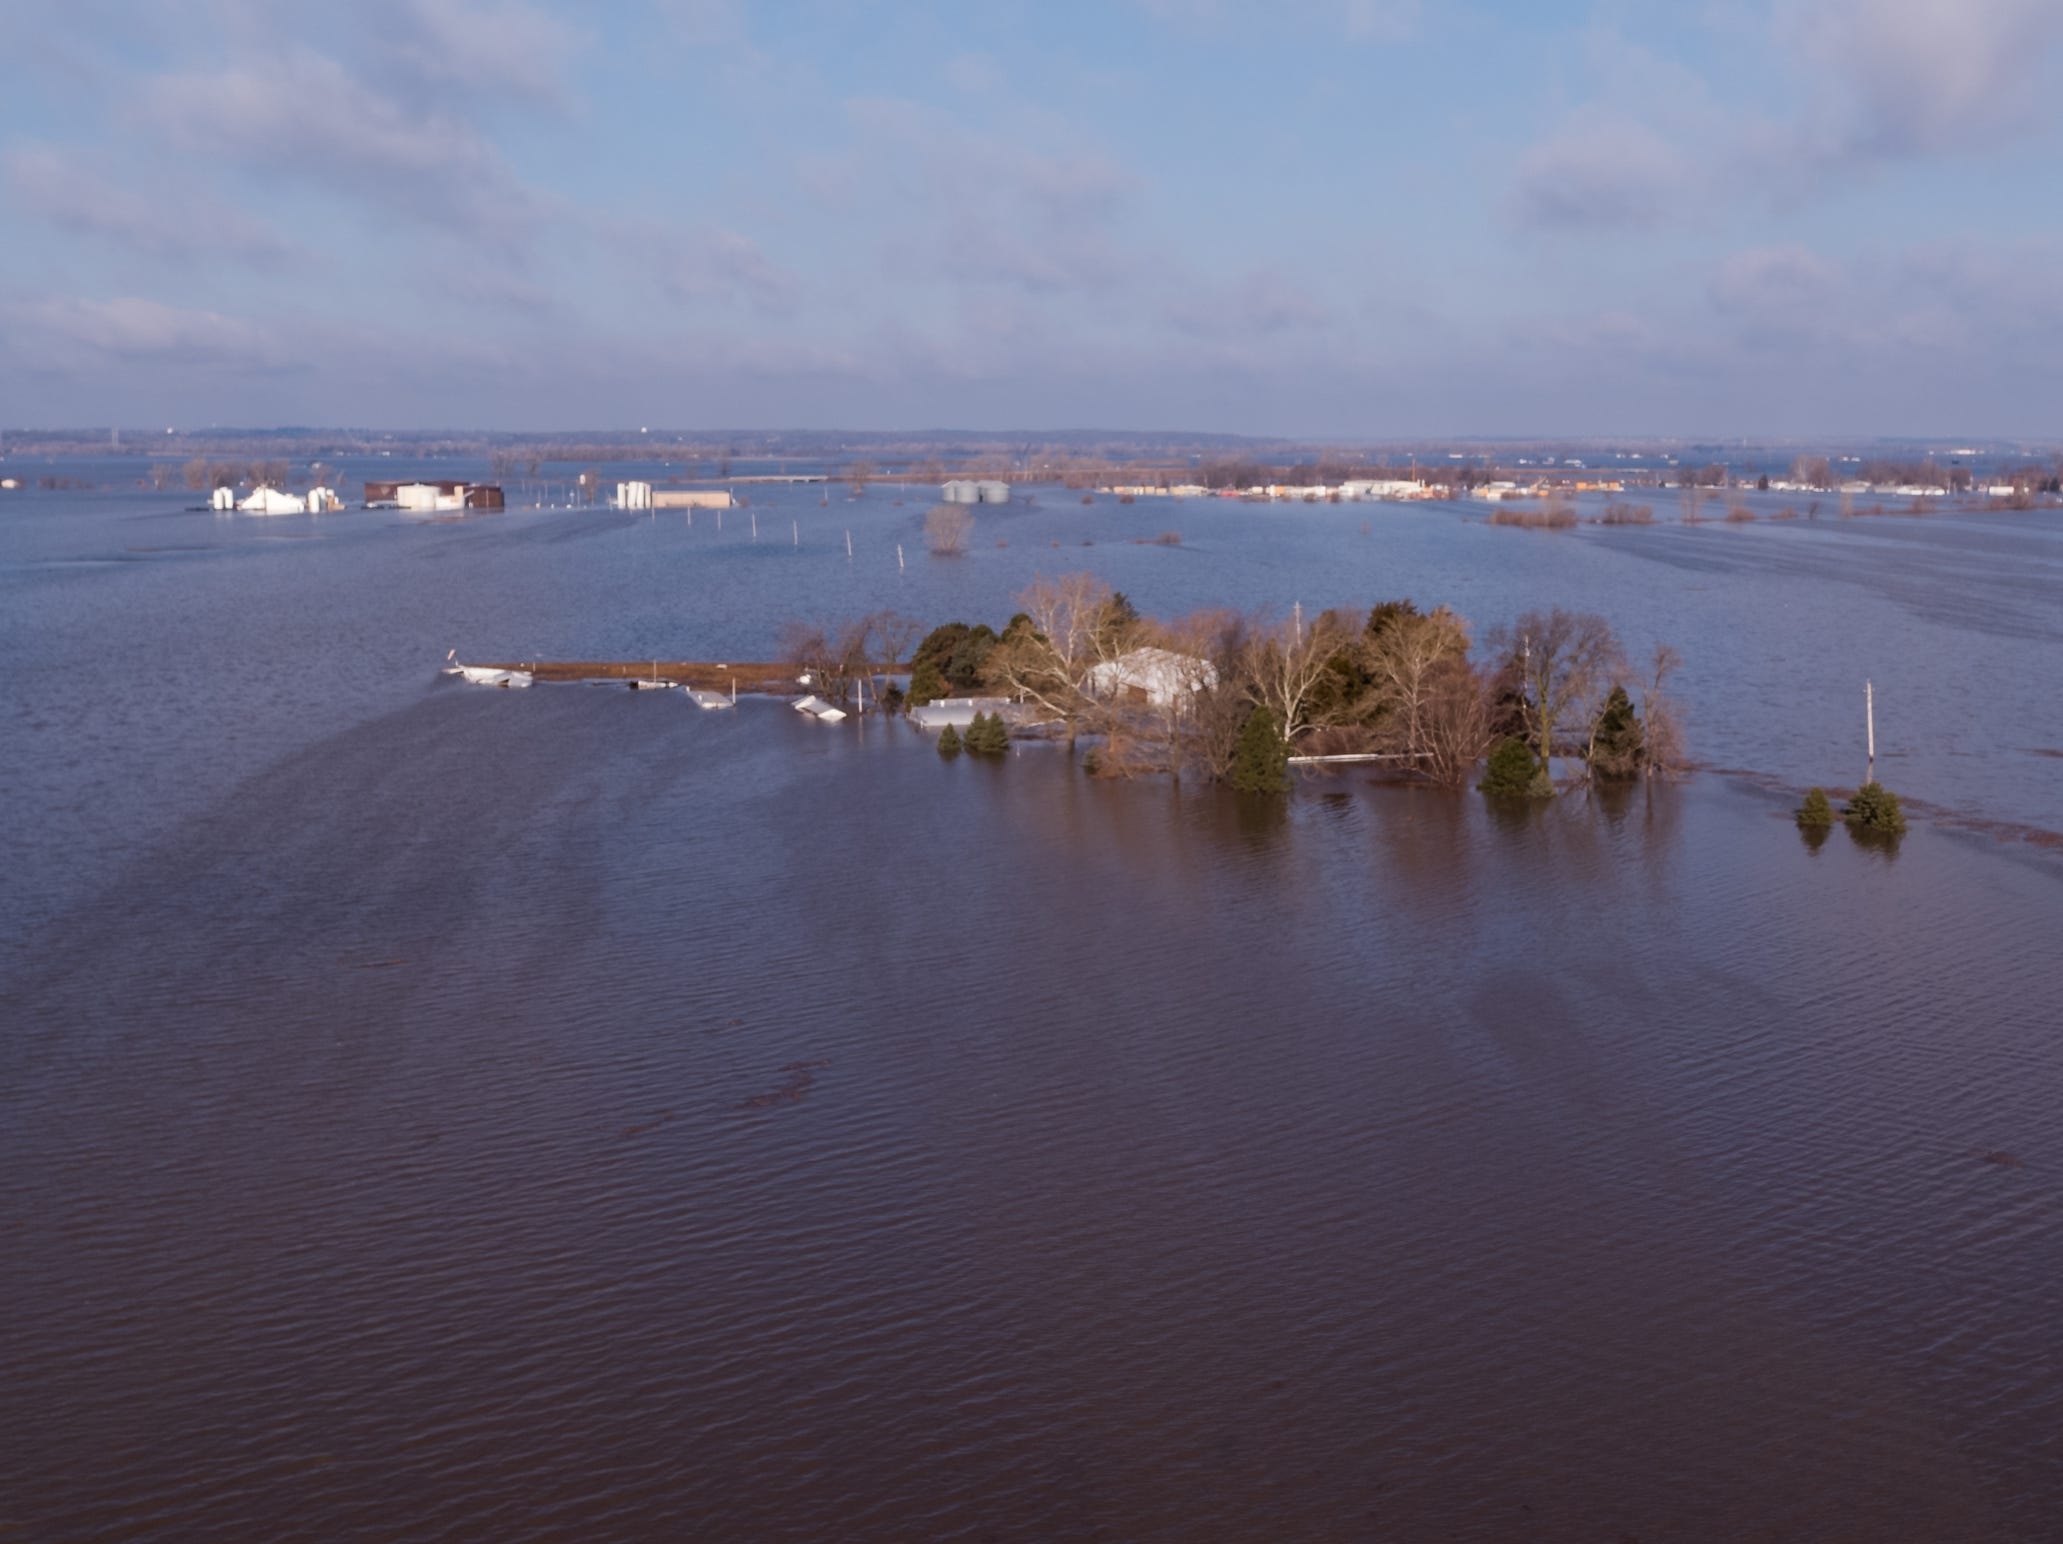 Flood waters surround homes and farmland outside of Glenwood on Wednesday, March 20, 2019.